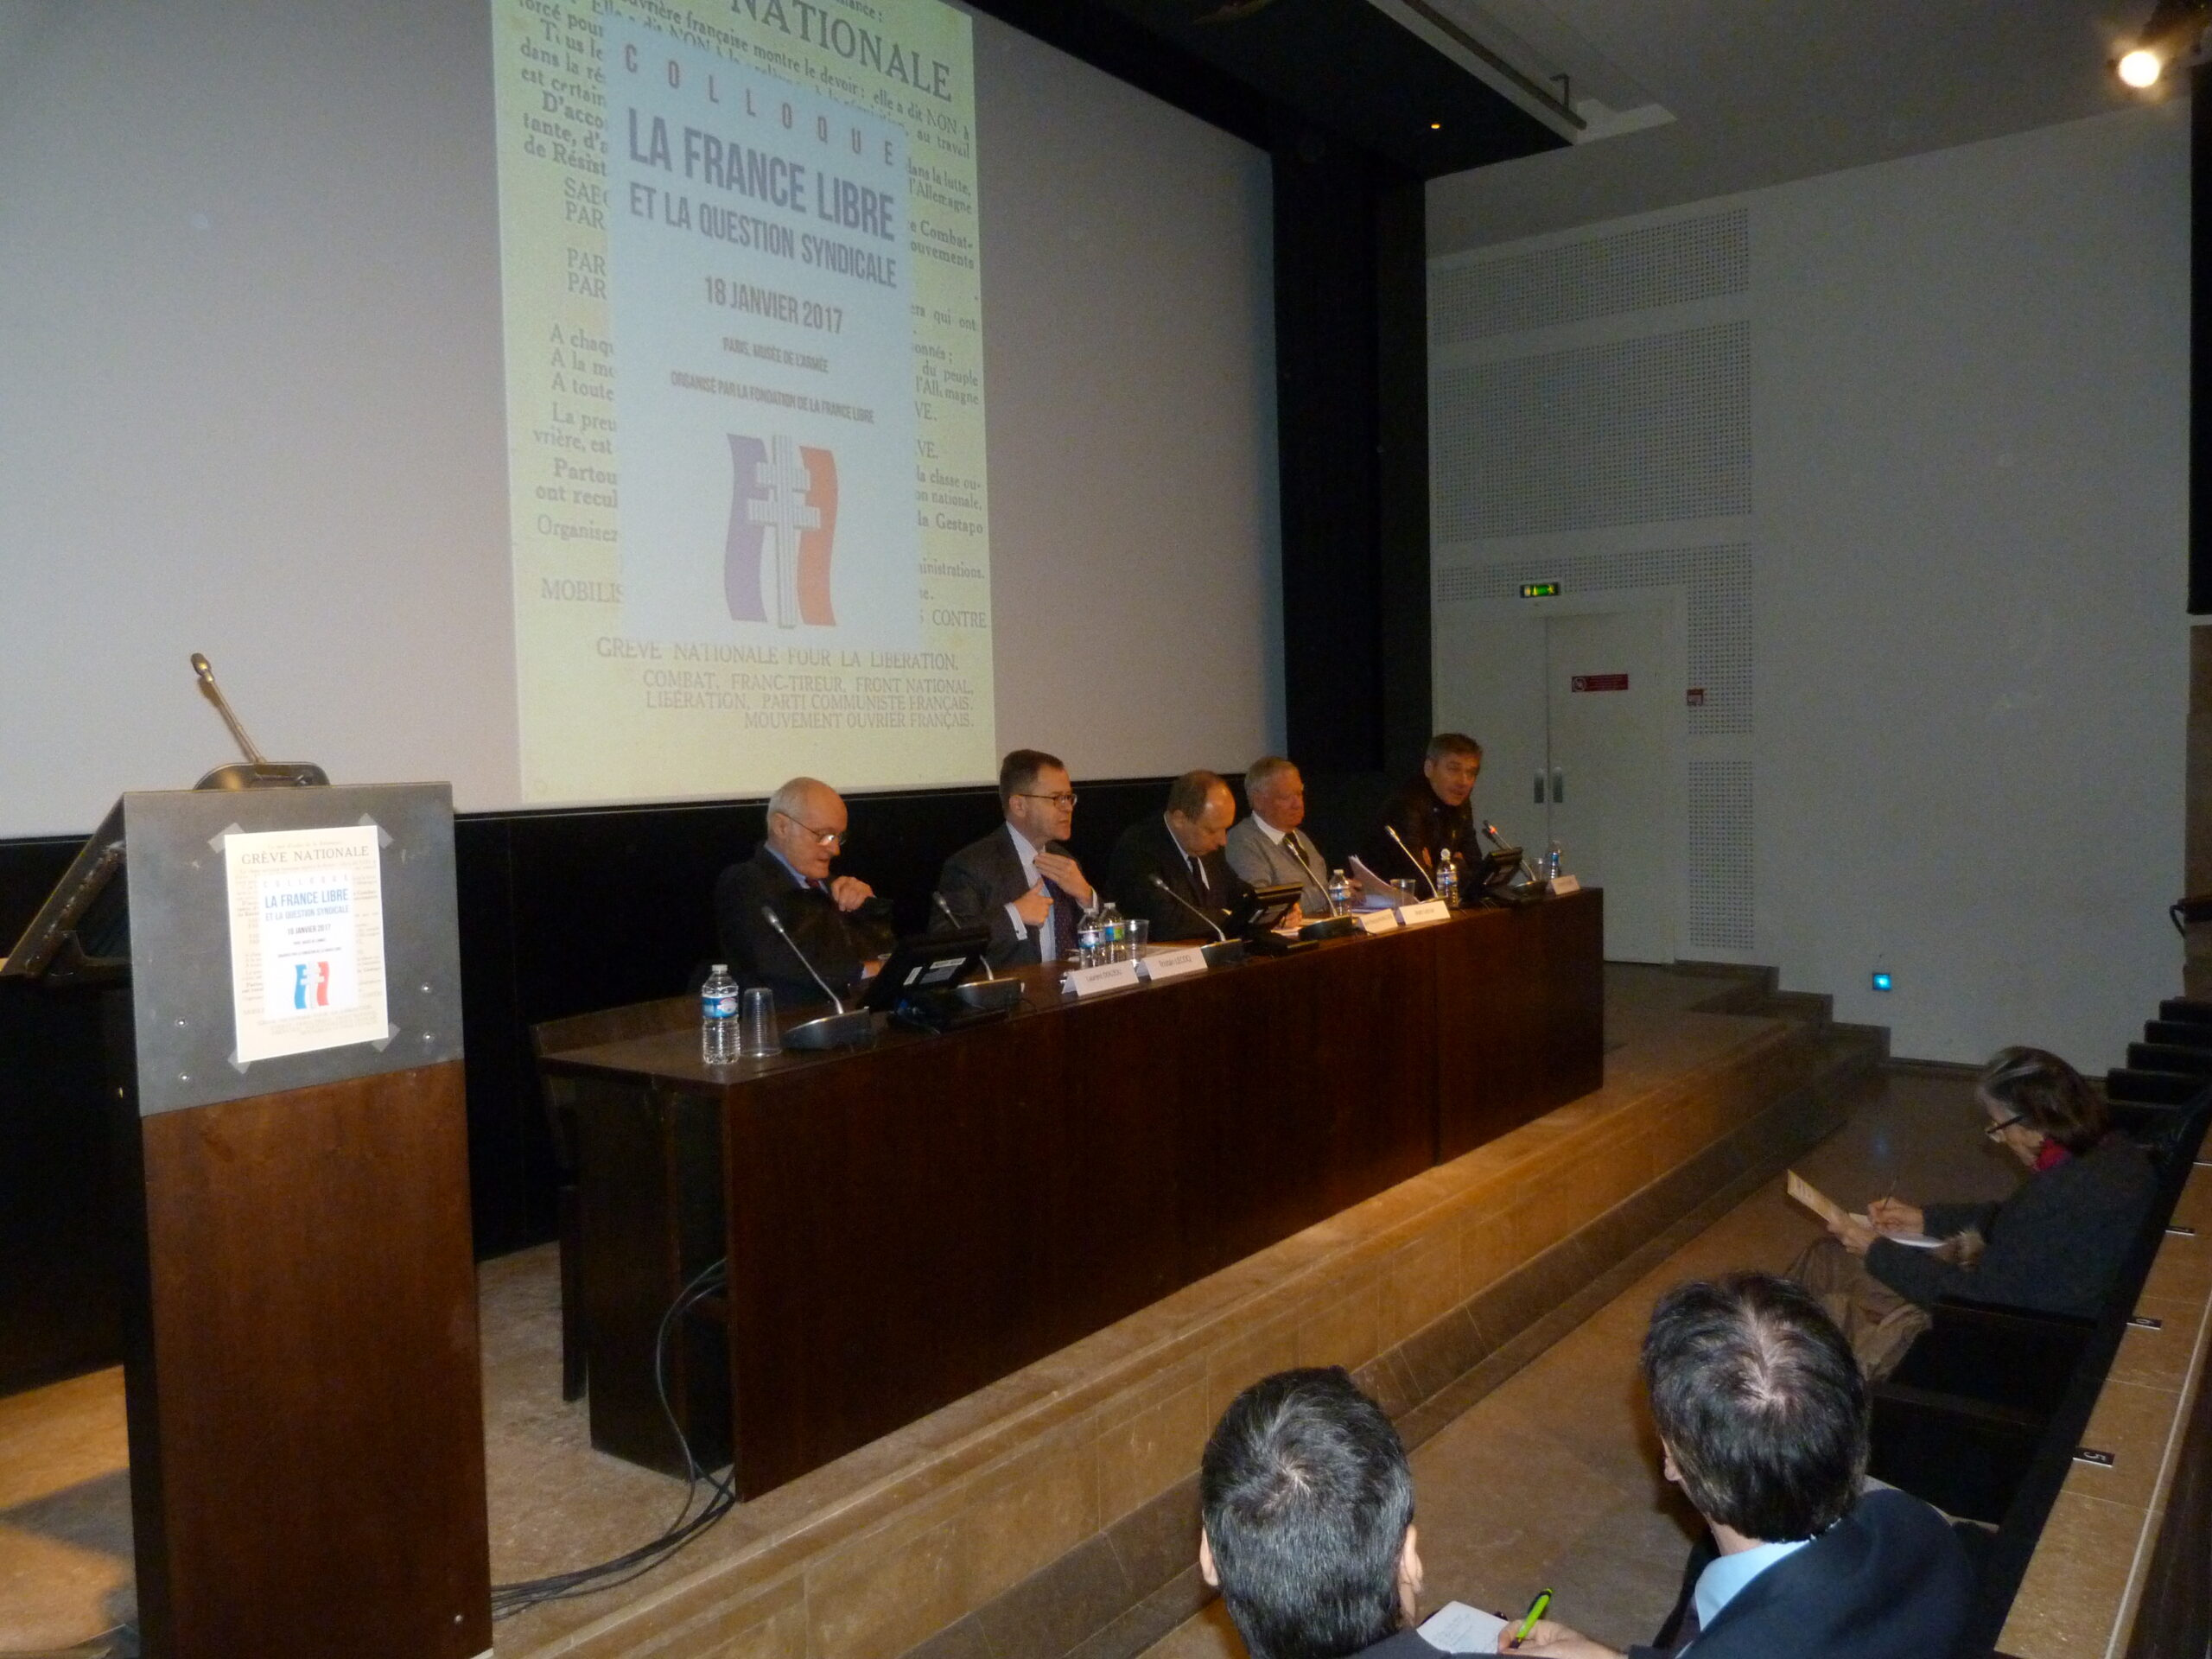 Colloque 2016 : LA FRANCE LIBRE ET LA QUESTION SYNDICALE